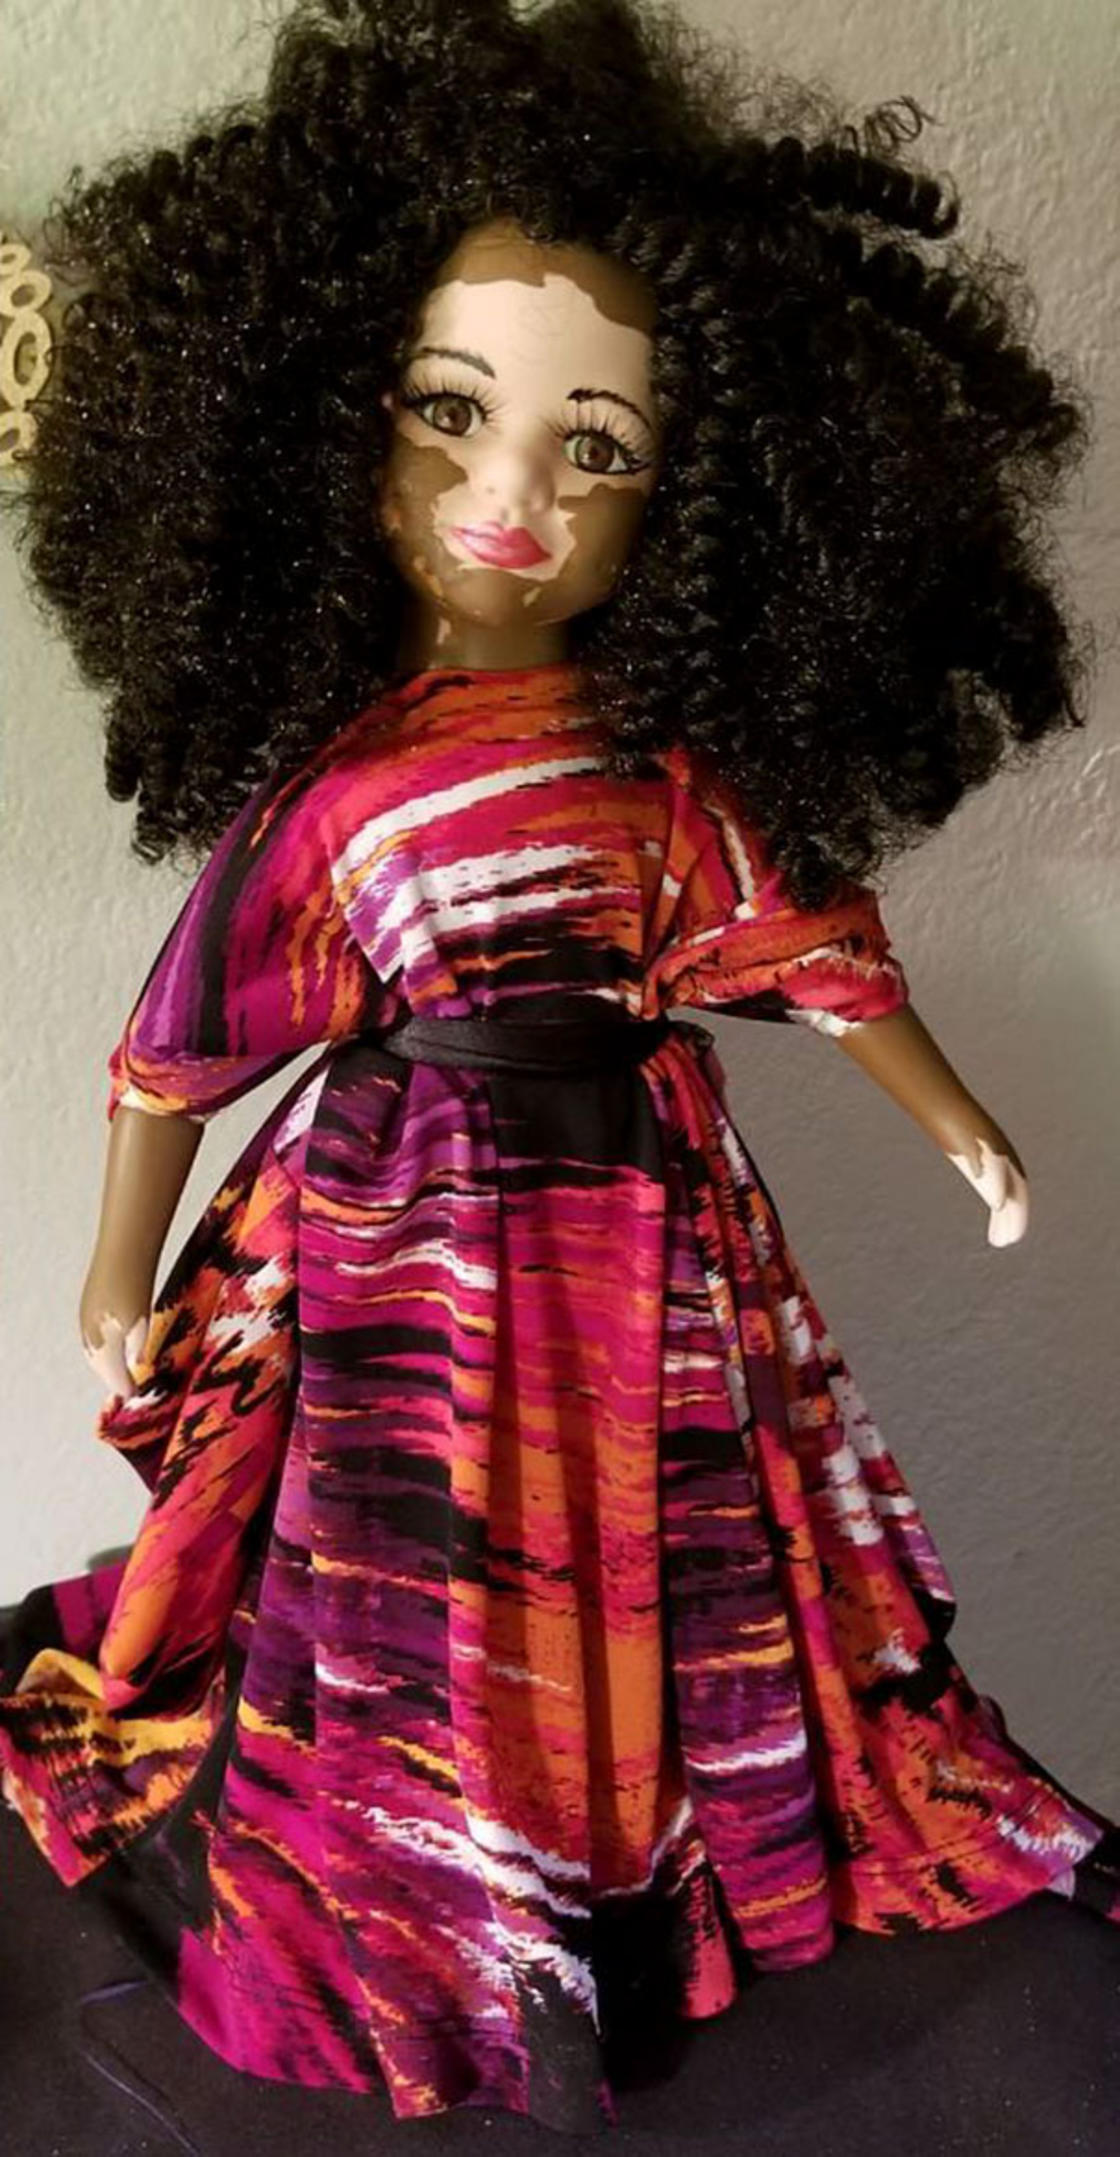 She creates vitiligo dolls to help children with this skin condition